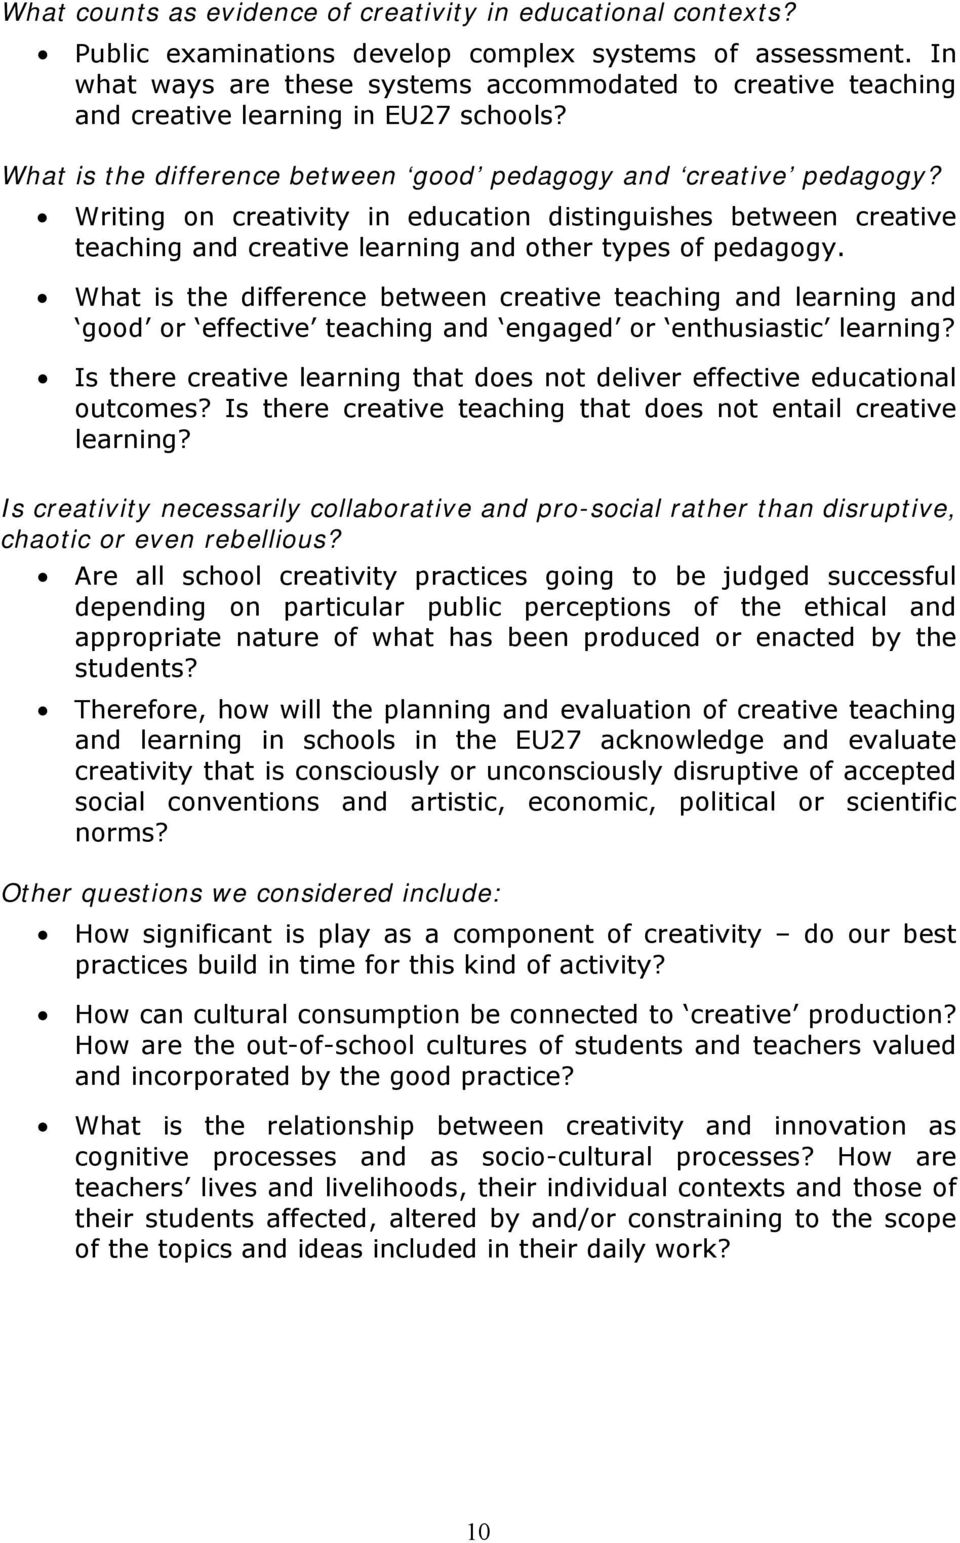 Writing on creativity in education distinguishes between creative teaching and creative learning and other types of pedagogy.